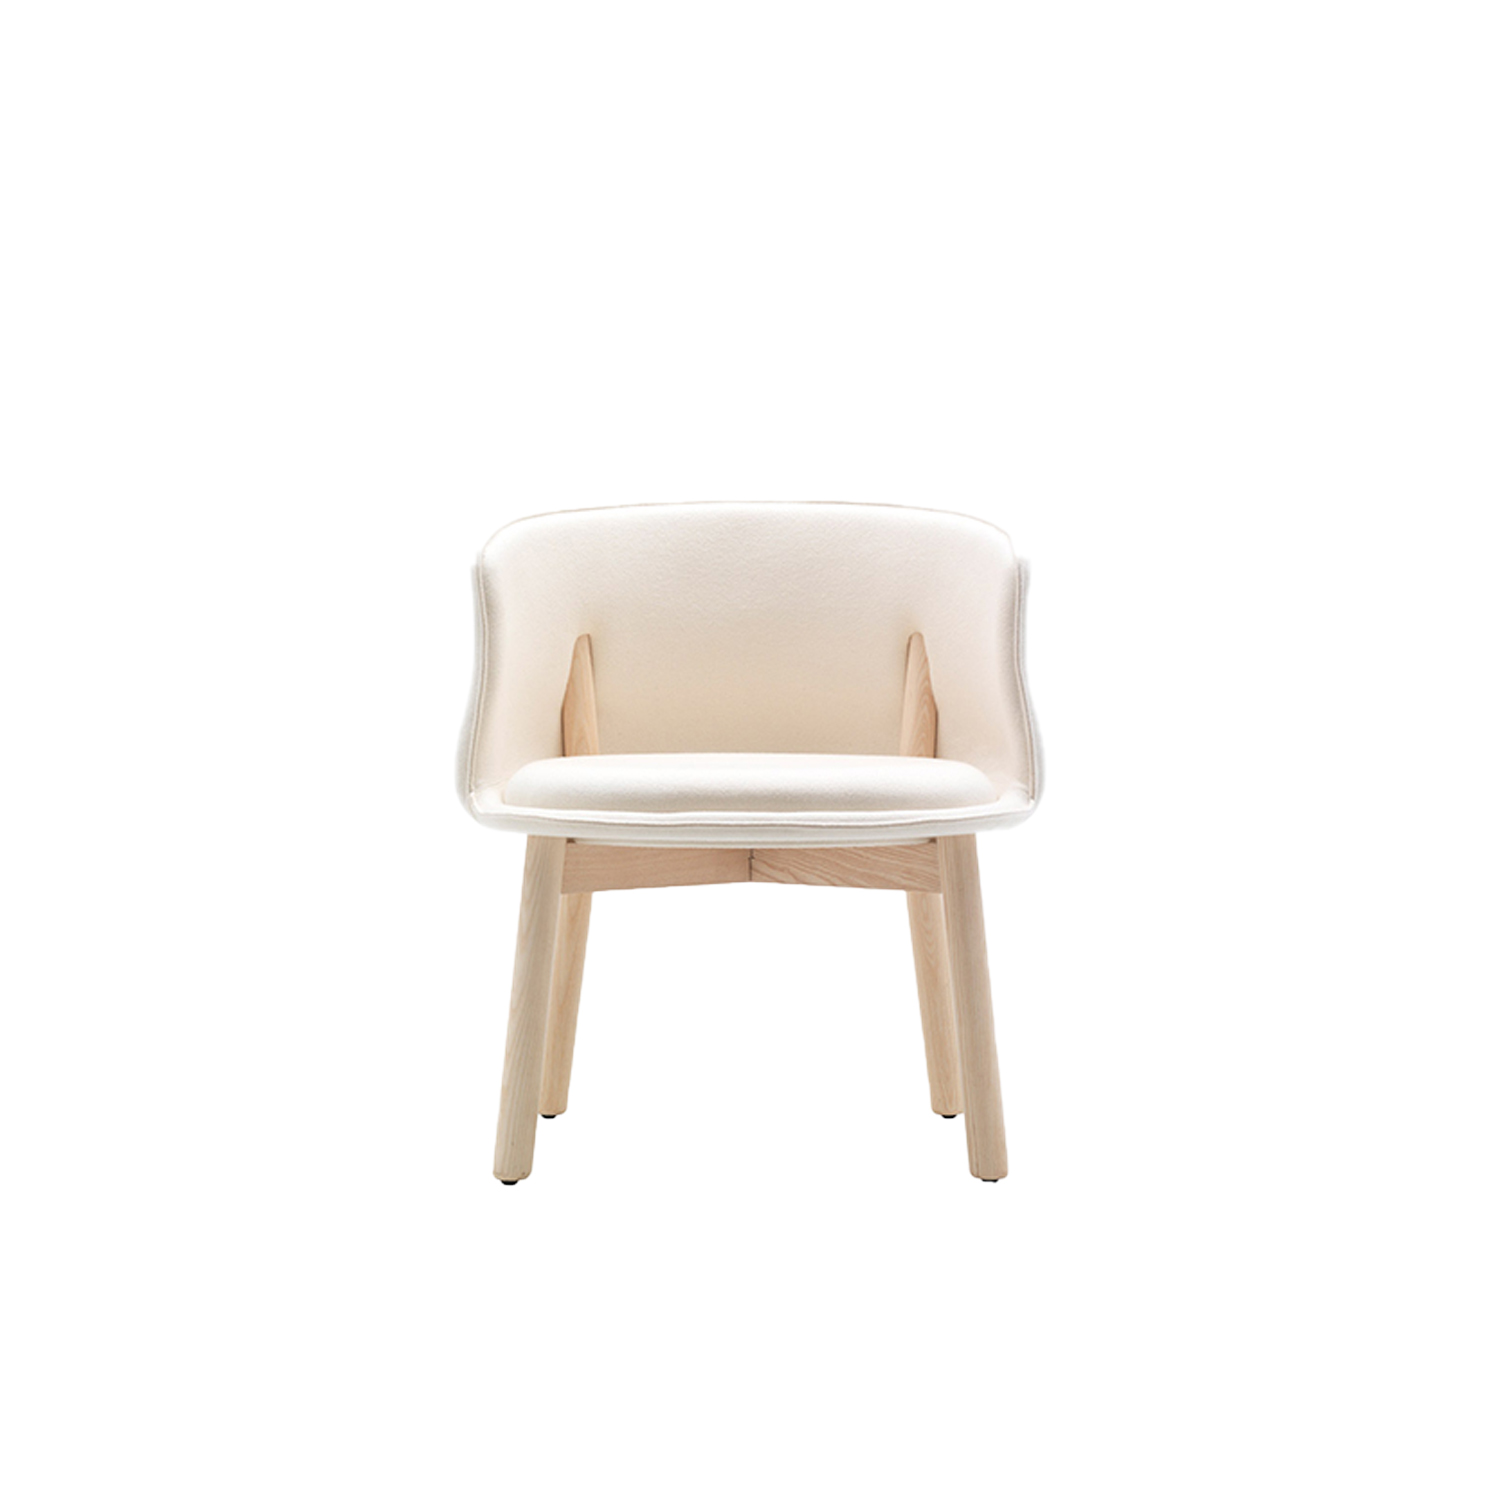 Peg Armchair - Inspired by the city cars that casually scoot around the streets of Milan, such as the famous Fiat 500, the Peg Armchair has a low, rounded shape, resting atop solid ash wood legs with a bleached, oak-stained, wengé-stained or black-stained finish. The legs perforate both sides of the backrest: thanks to this detail, the Nendo studio ably provides proper back support and ideal comfort for anyone sitting in this small armchair.